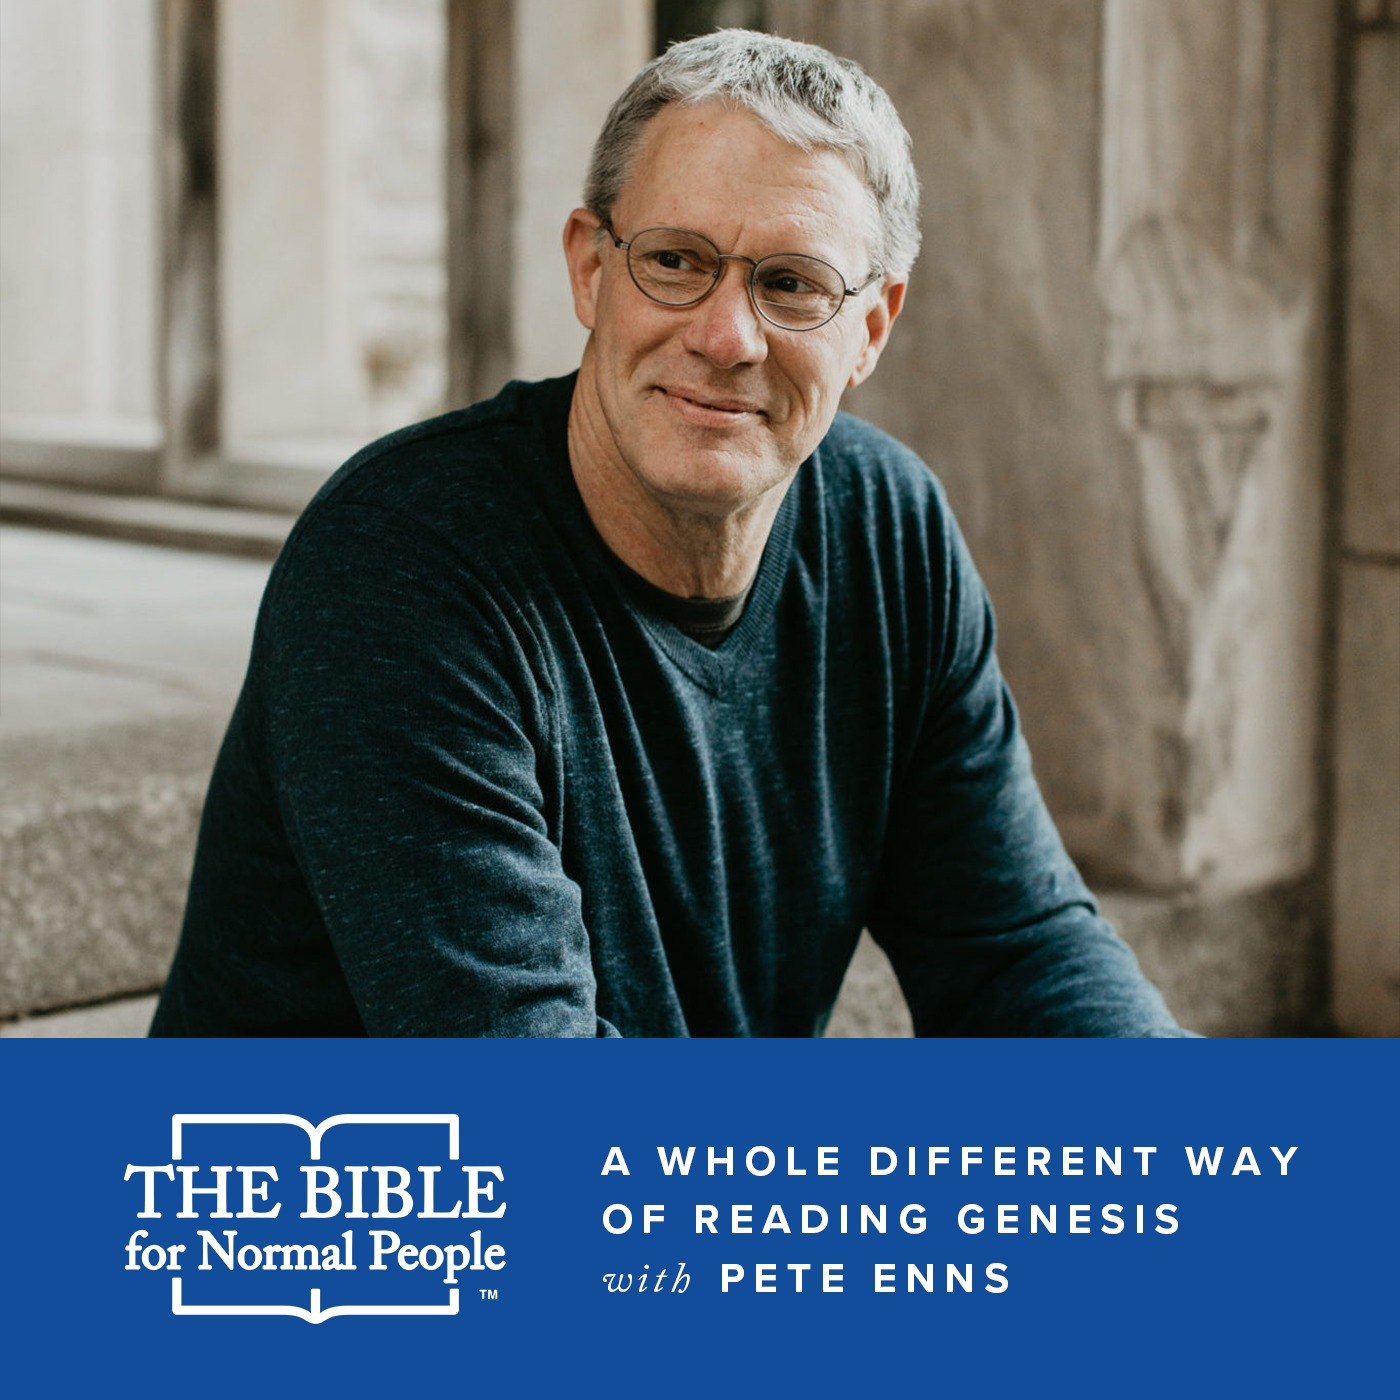 Episode 172: Pete Enns - A Whole Different Way of Reading Genesis